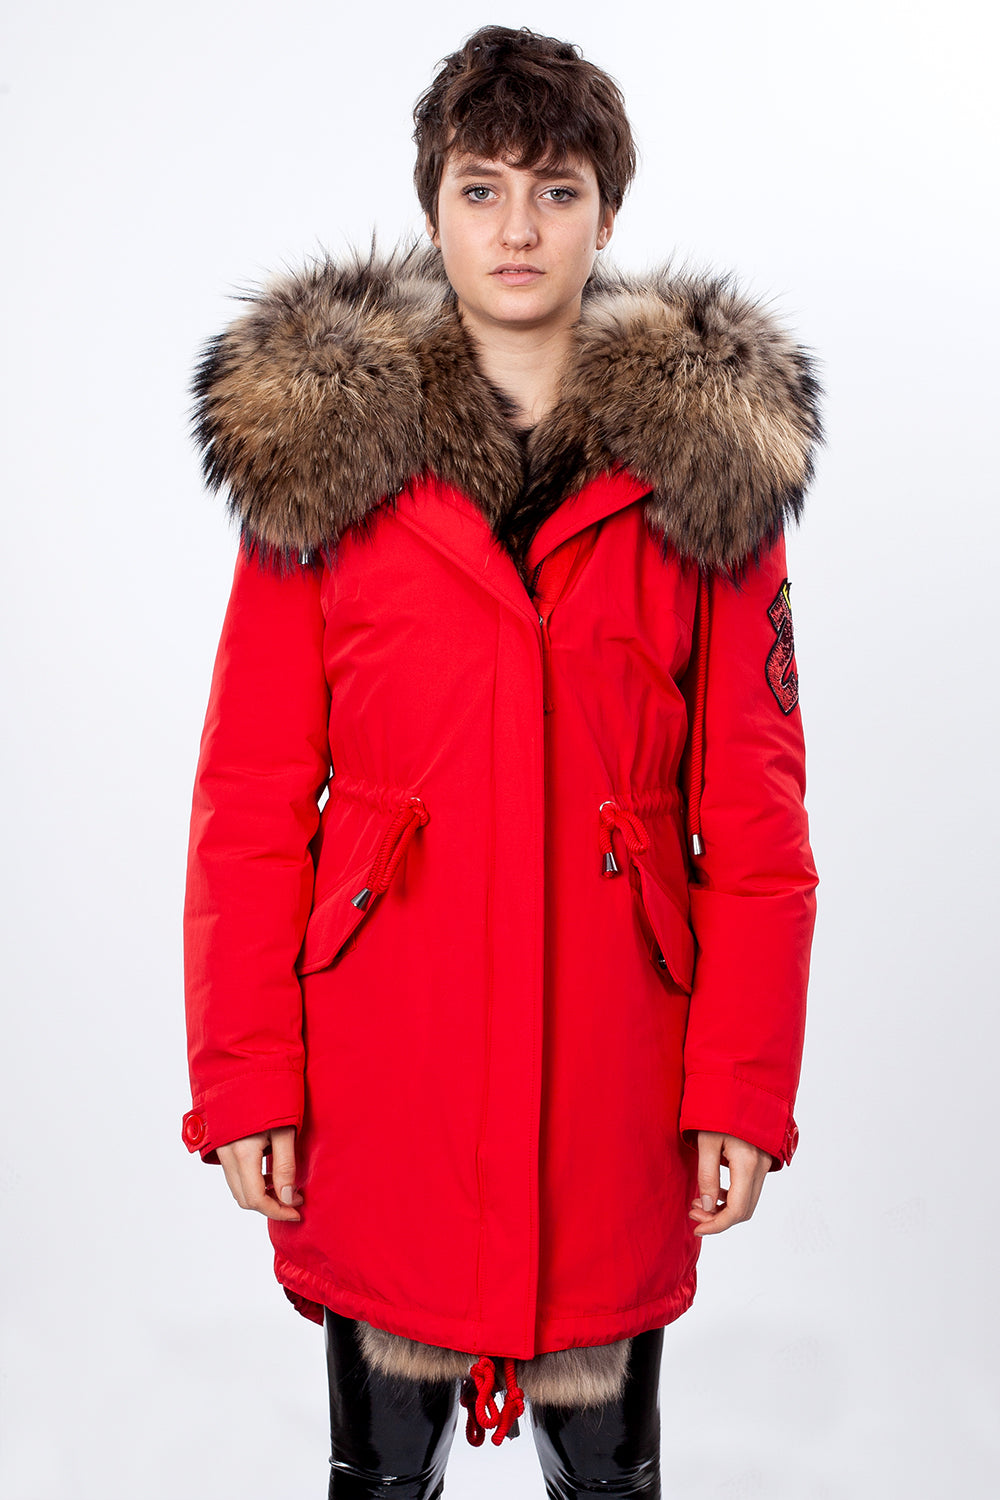 Red Midi Parka Main Fabric is Waterproof / Raincoat Fabric With Finnraccoon